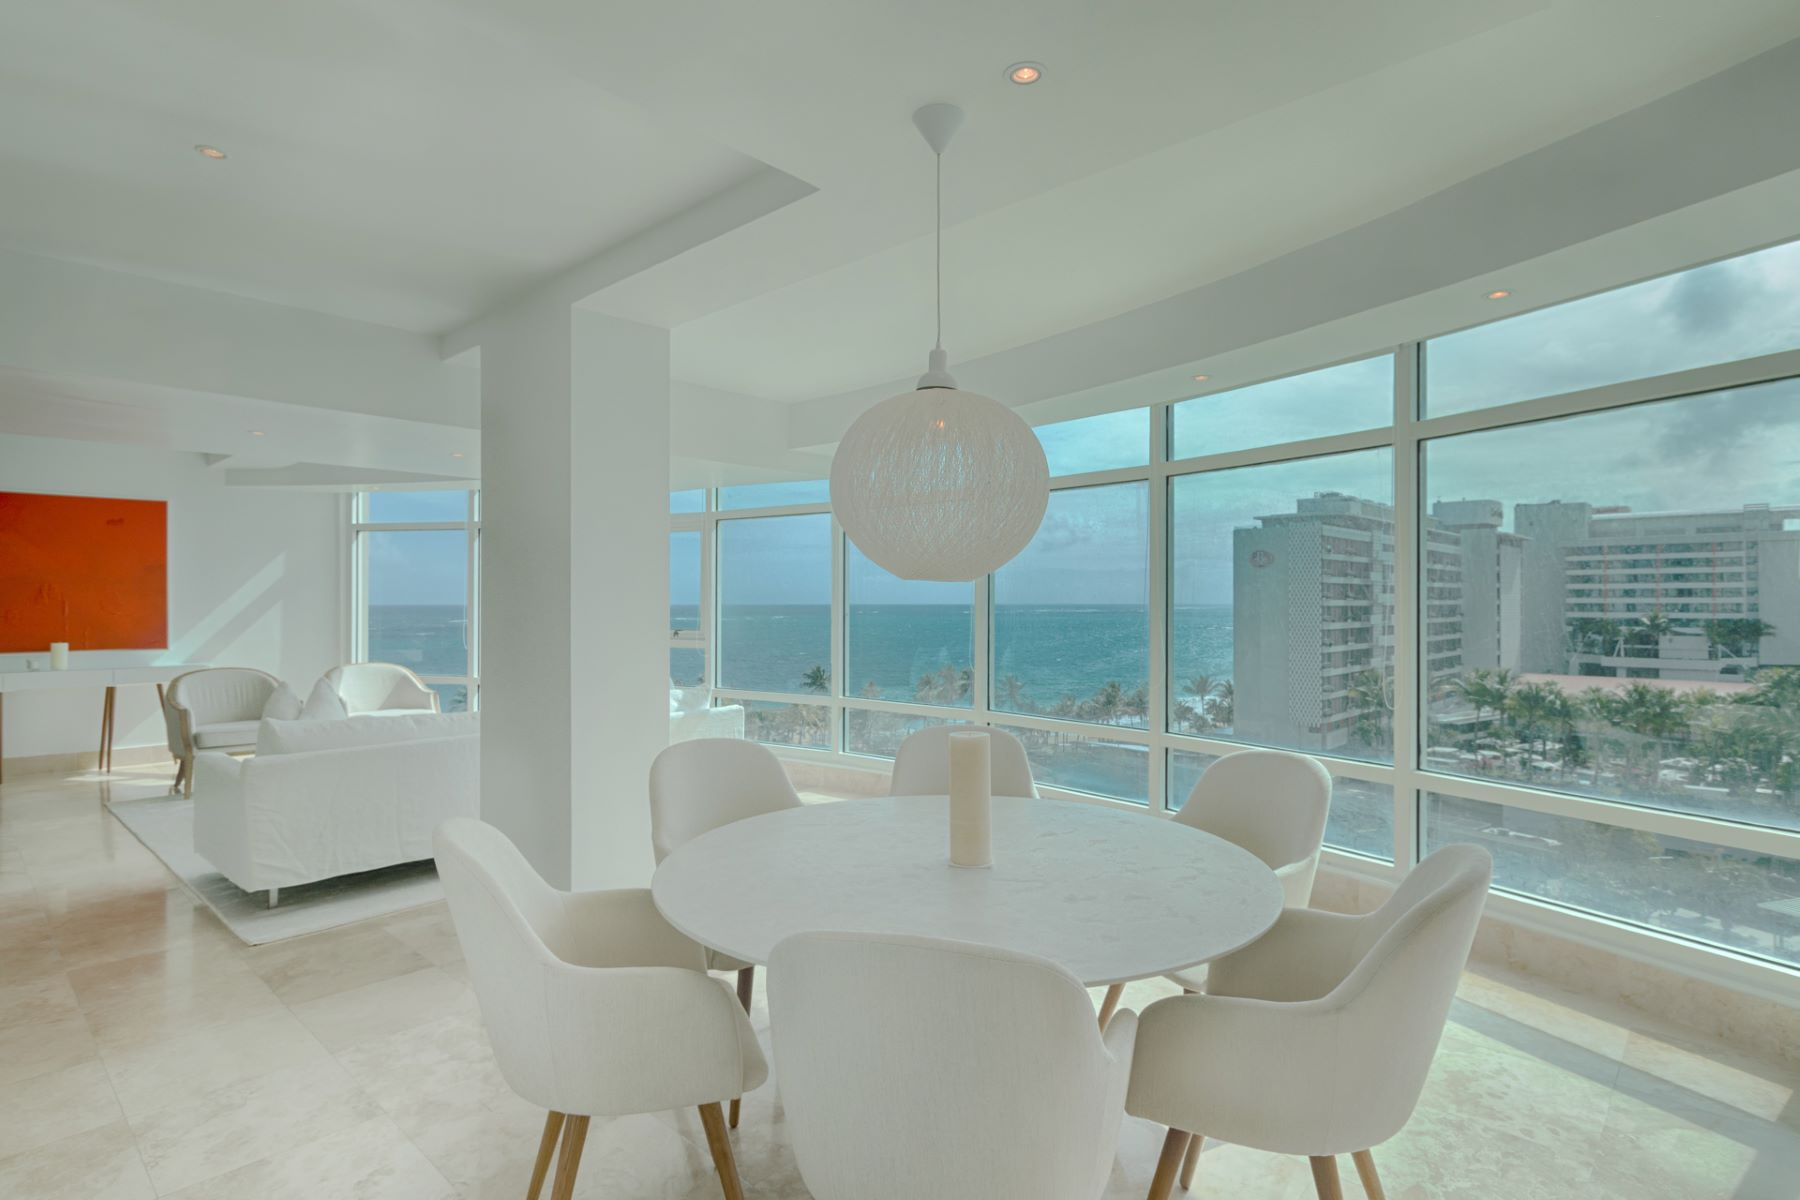 Appartement voor Huren een t Modern 9th floor Ocean View at The Bristol 1052 Ashford Avenue San Juan, Puerto Rico 00907 Puerto Rico